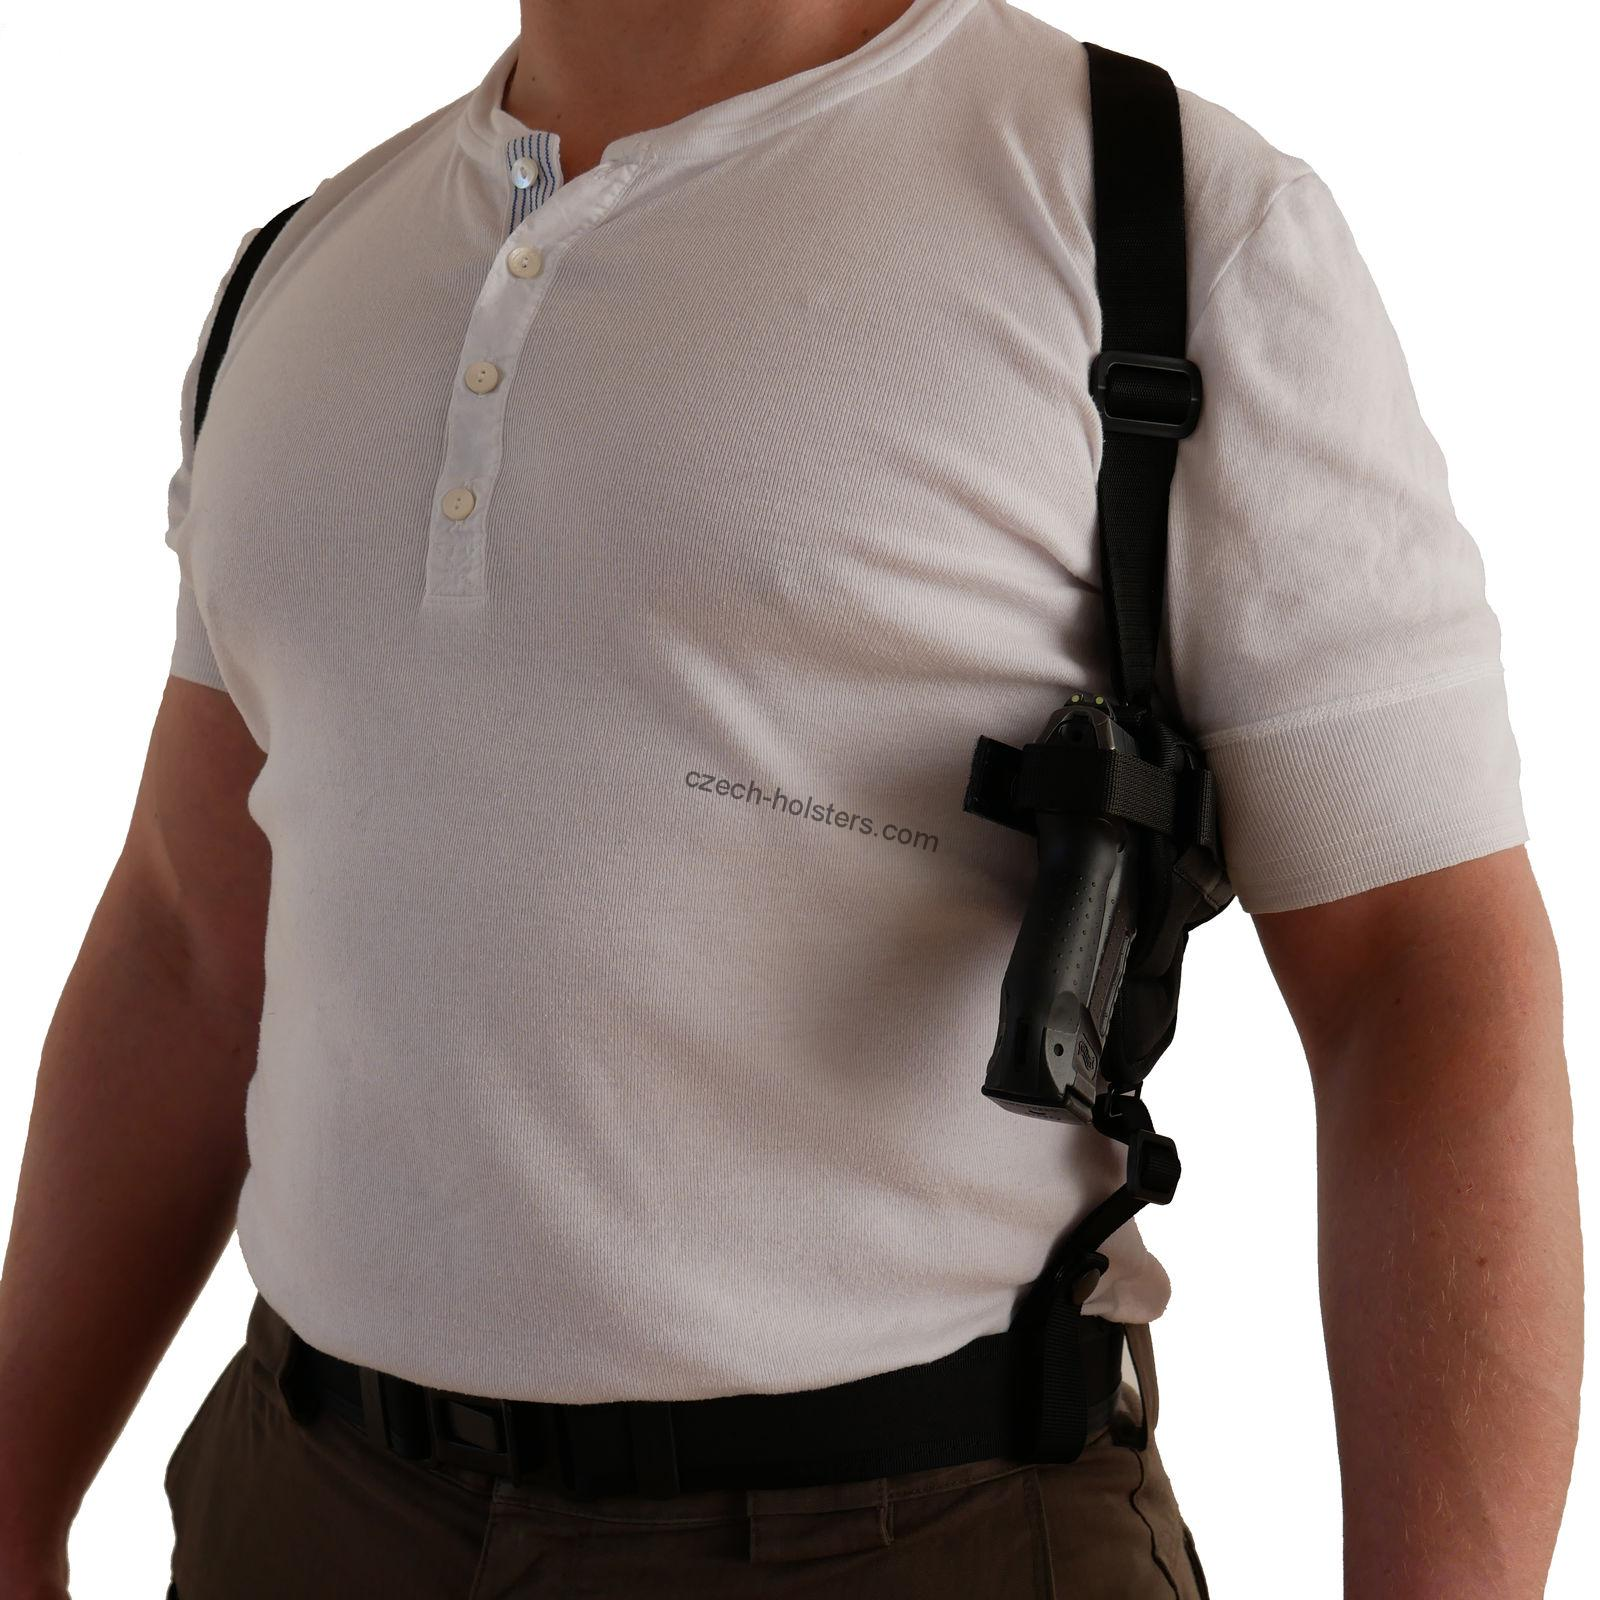 CZ Universal Size Horizontal Ambidextrous Shoulder Holster w/ Cross Rig